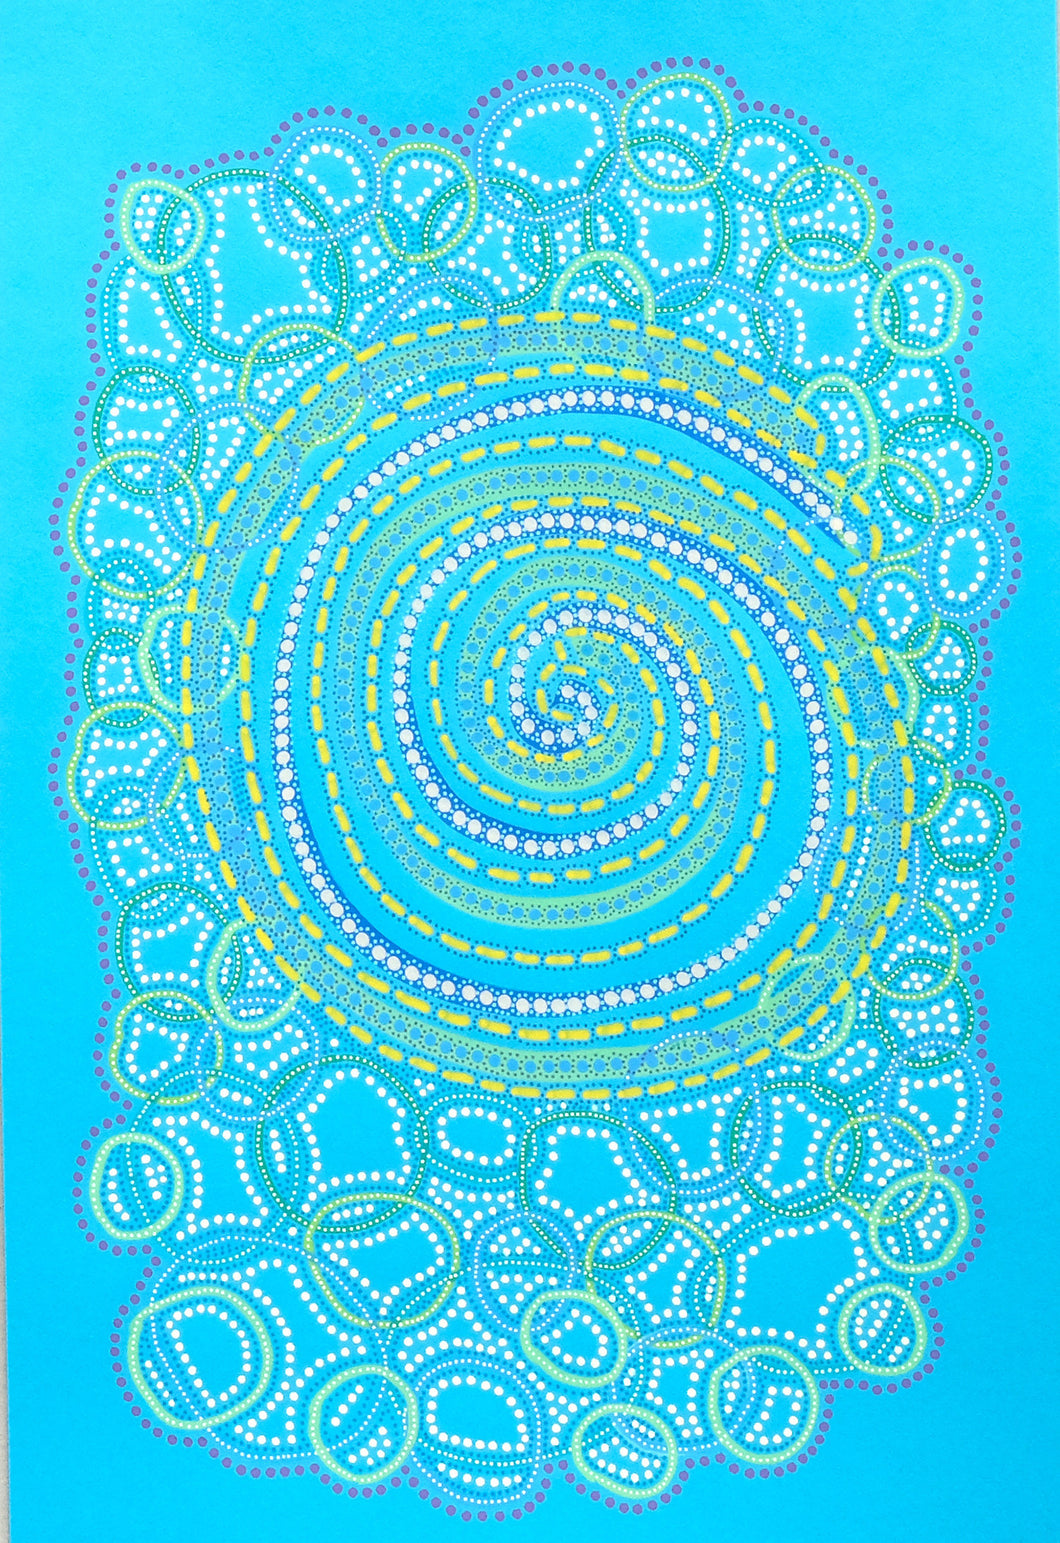 Bright Turquoise Contemporary Abstract Drawing - Naomi Vona Art